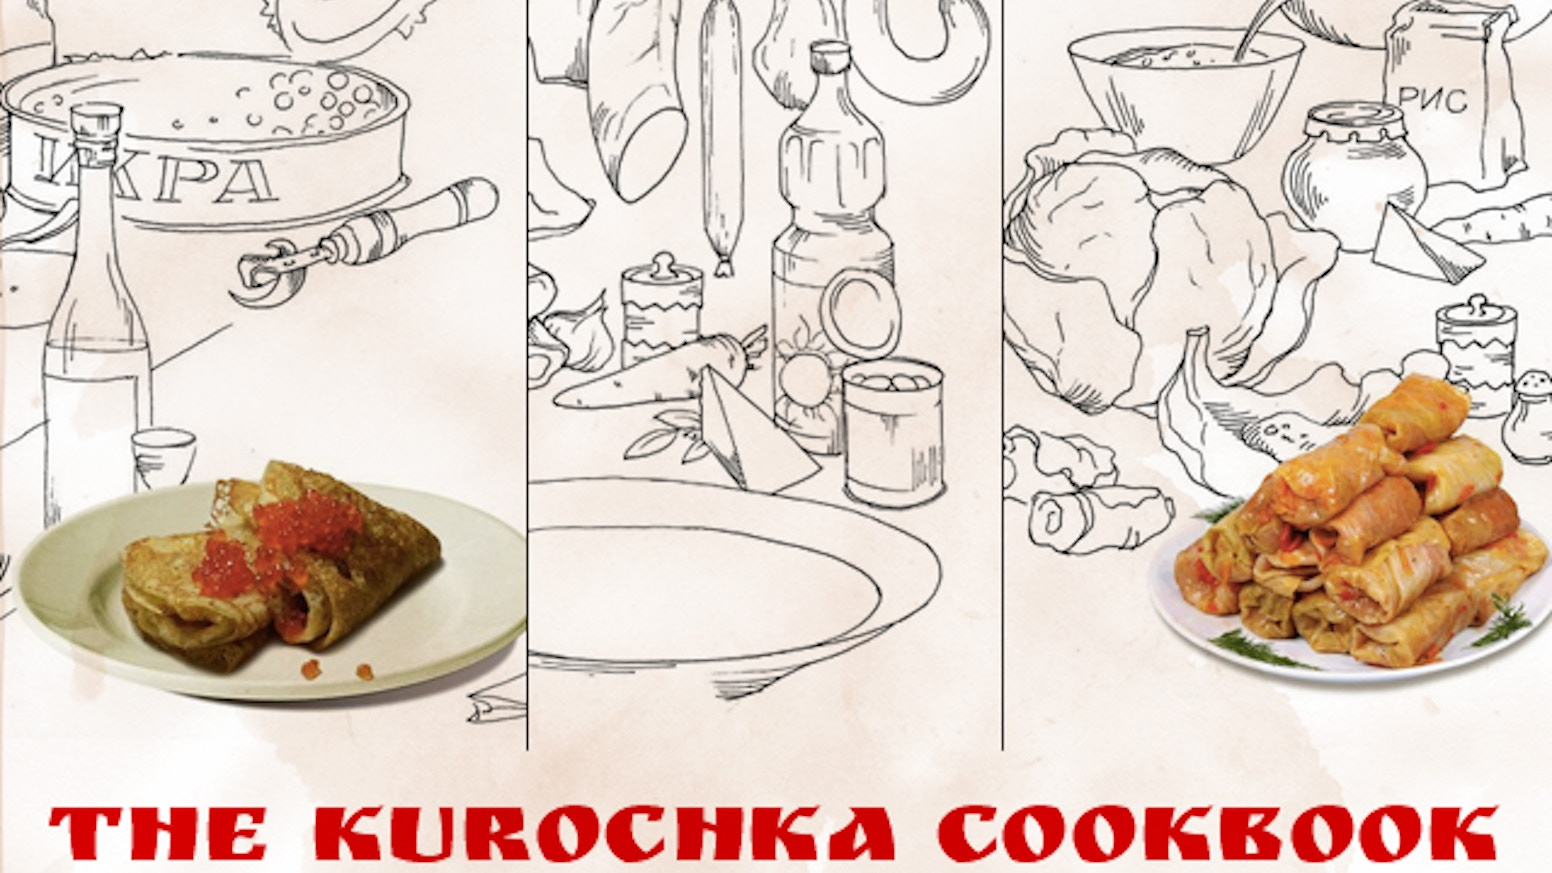 The kurochka cookbook a book of russian ukrainian recipes by yana the kurochka cookbook explores russian ukrainian cuisine through the culinary history classic foodie literature forumfinder Gallery